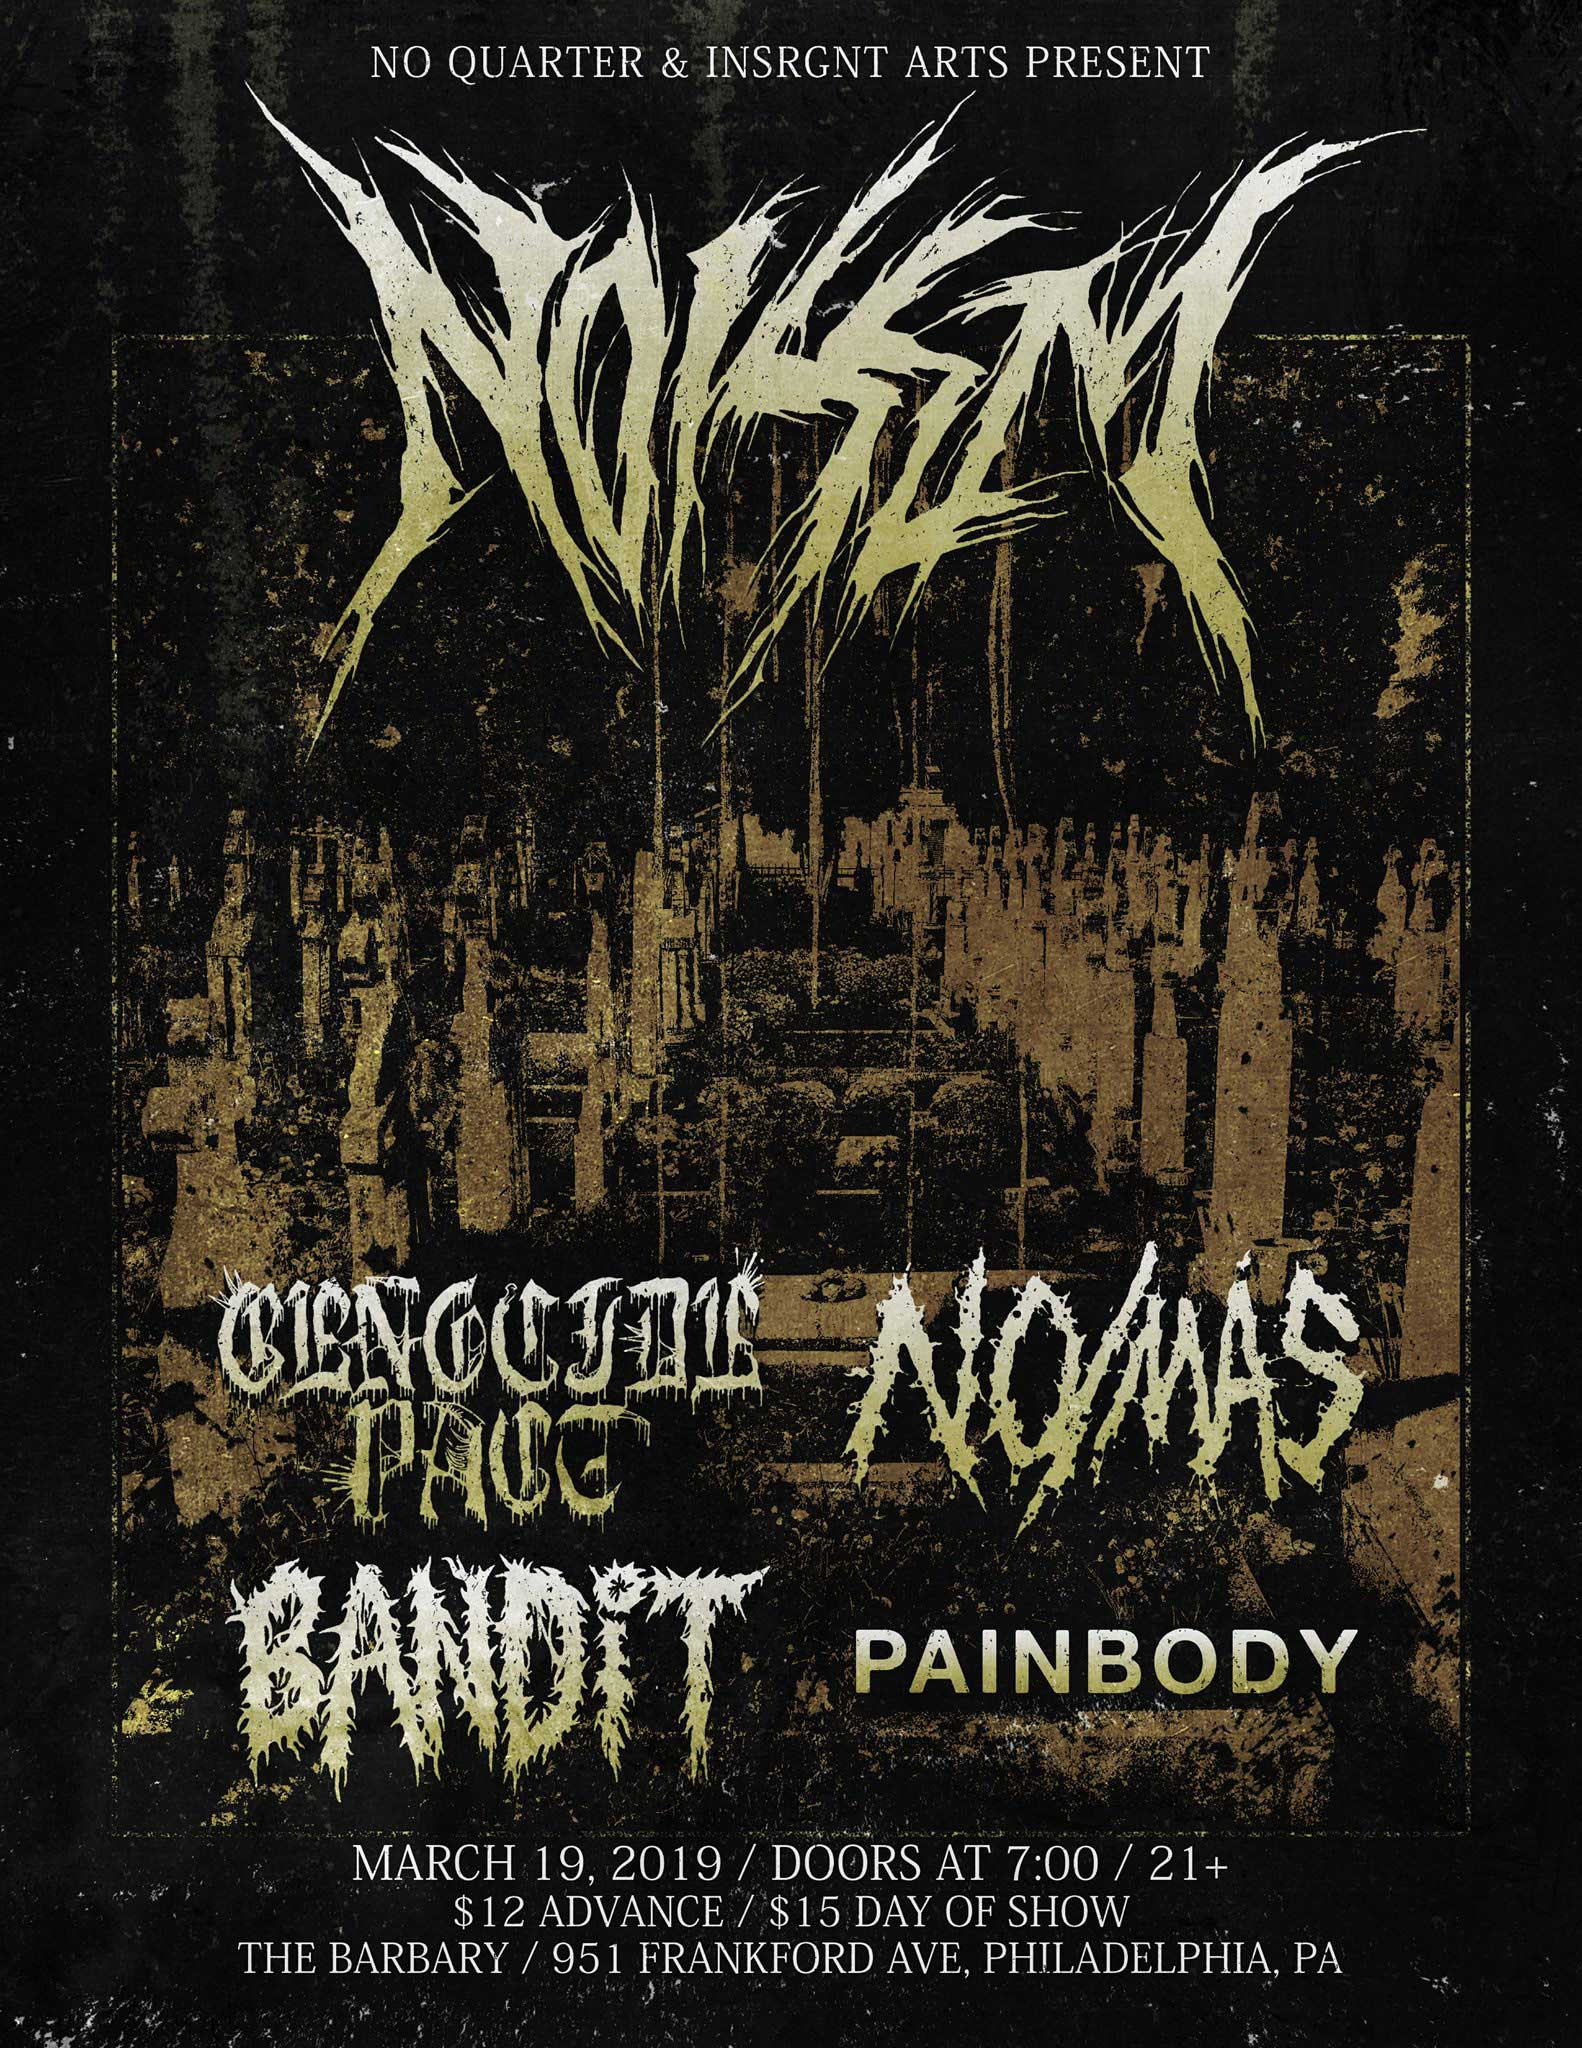 painbody, genocide pact, noisem, bandit in philly 2019